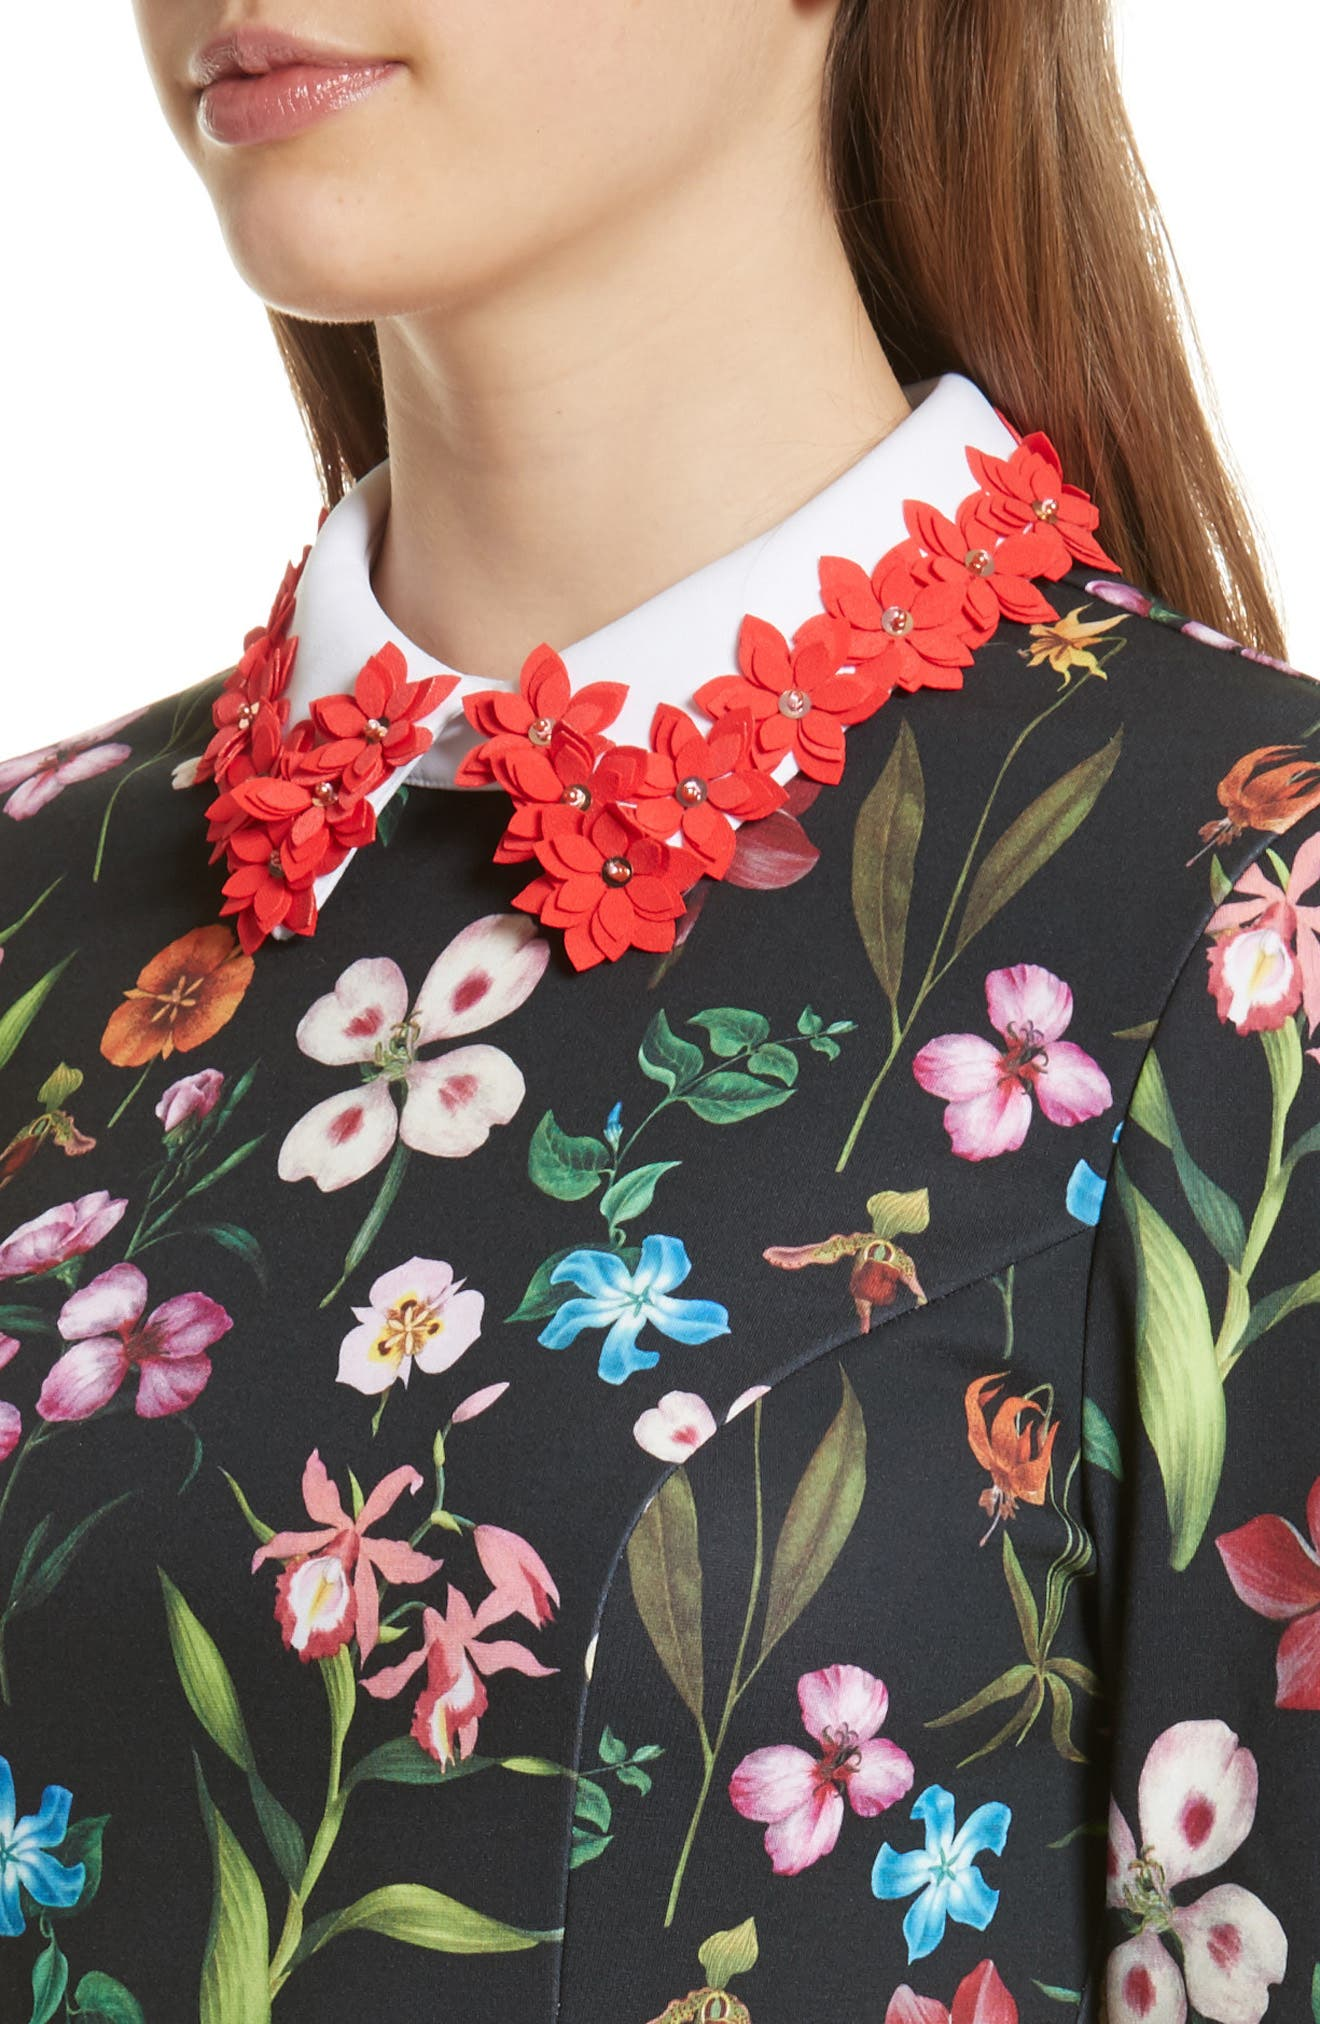 Hampton Embellished Collar Floral Dress,                             Alternate thumbnail 4, color,